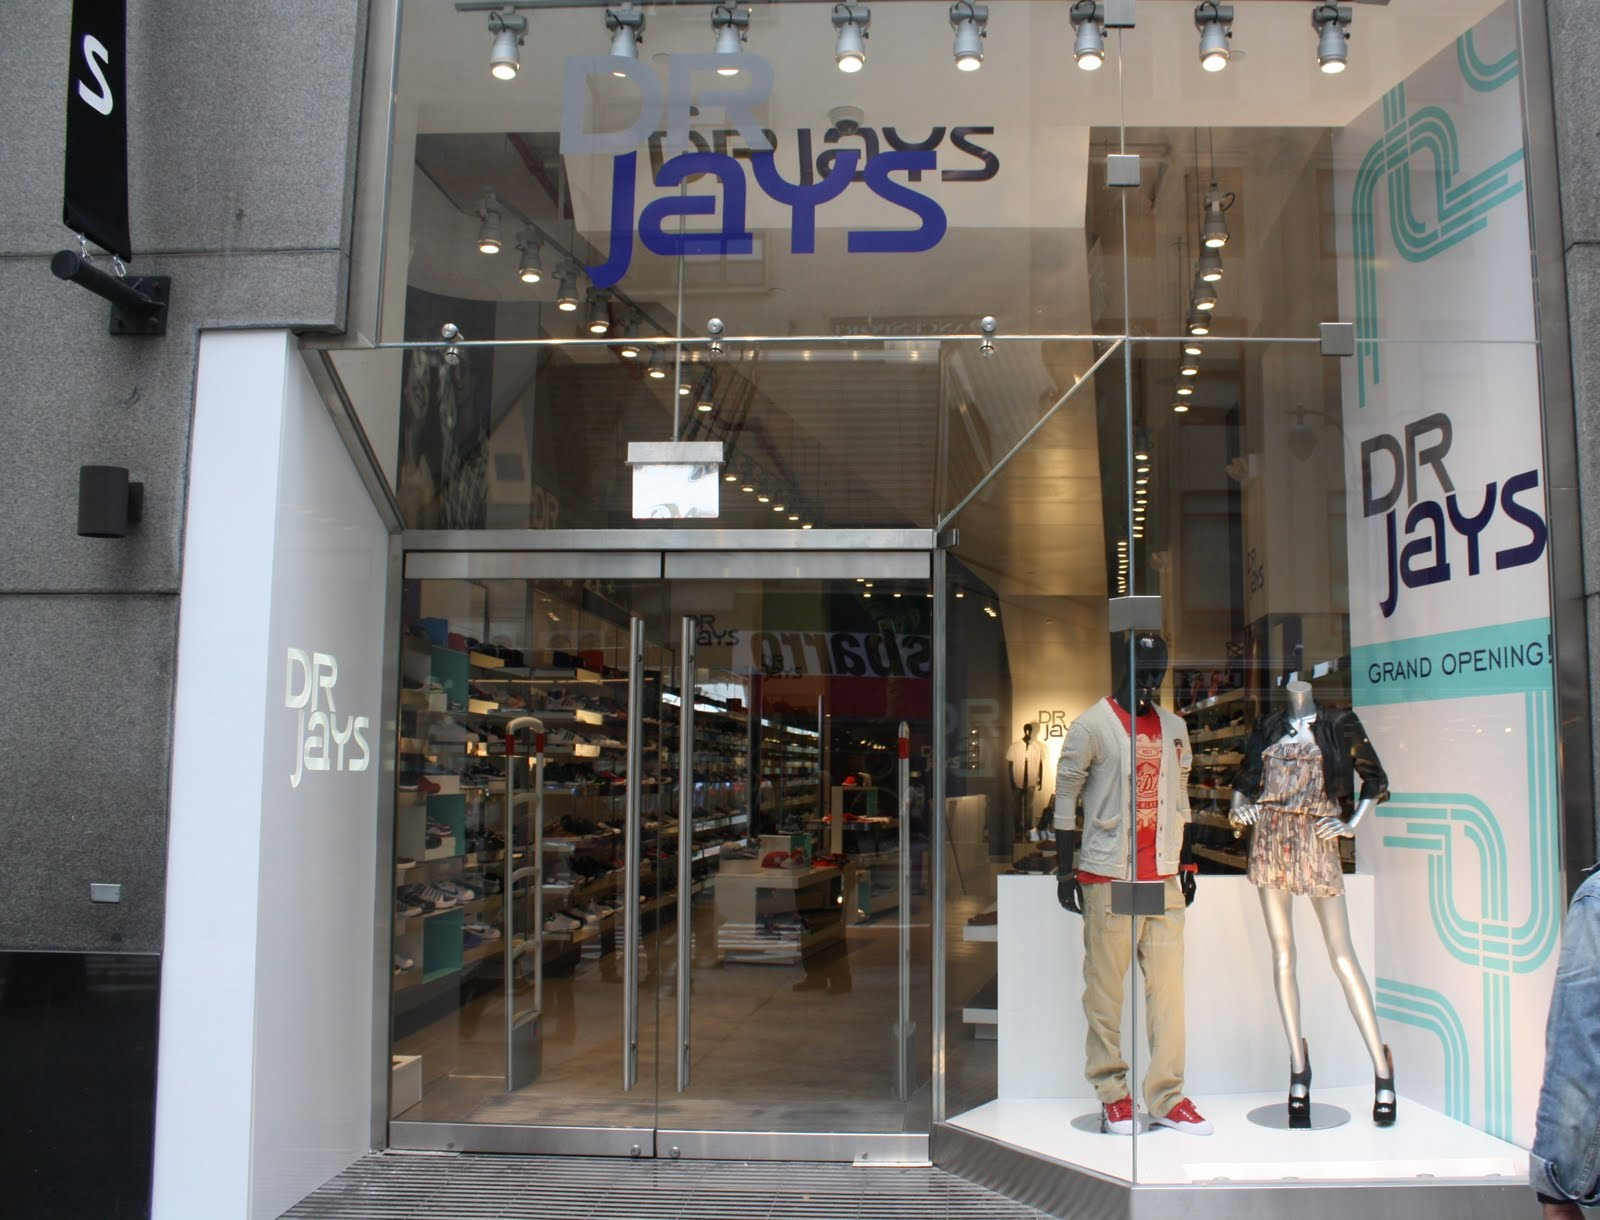 Find stores like Dr Jays. A handpicked list of 5 stores that are similar to Dr Jays. Discover and share similar stores in the US.